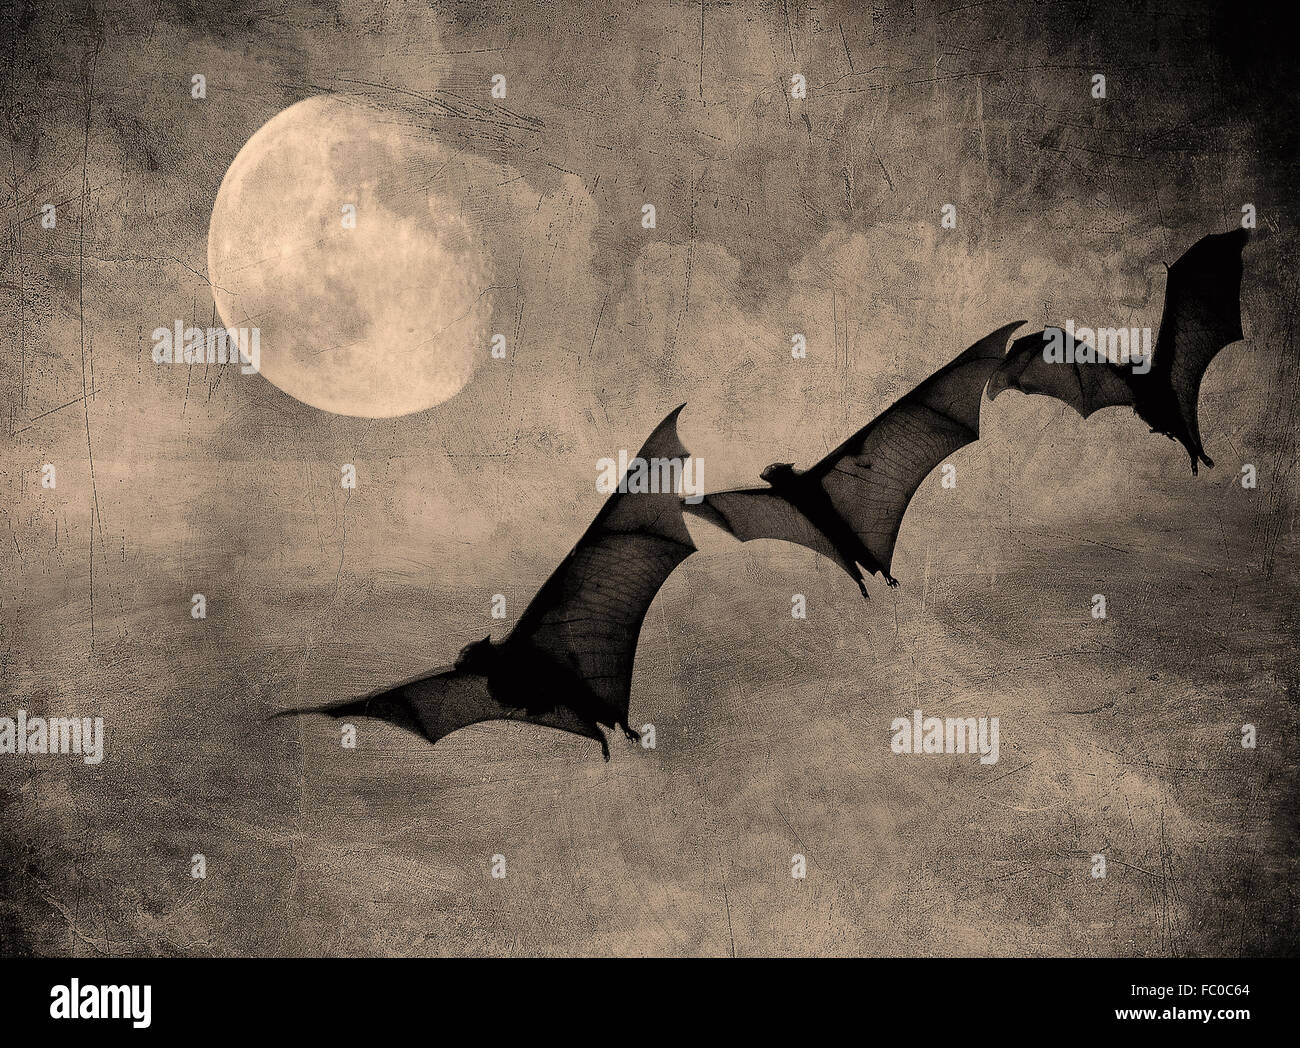 bats in the dark cloudy sky, perfect halloween background - Stock Image